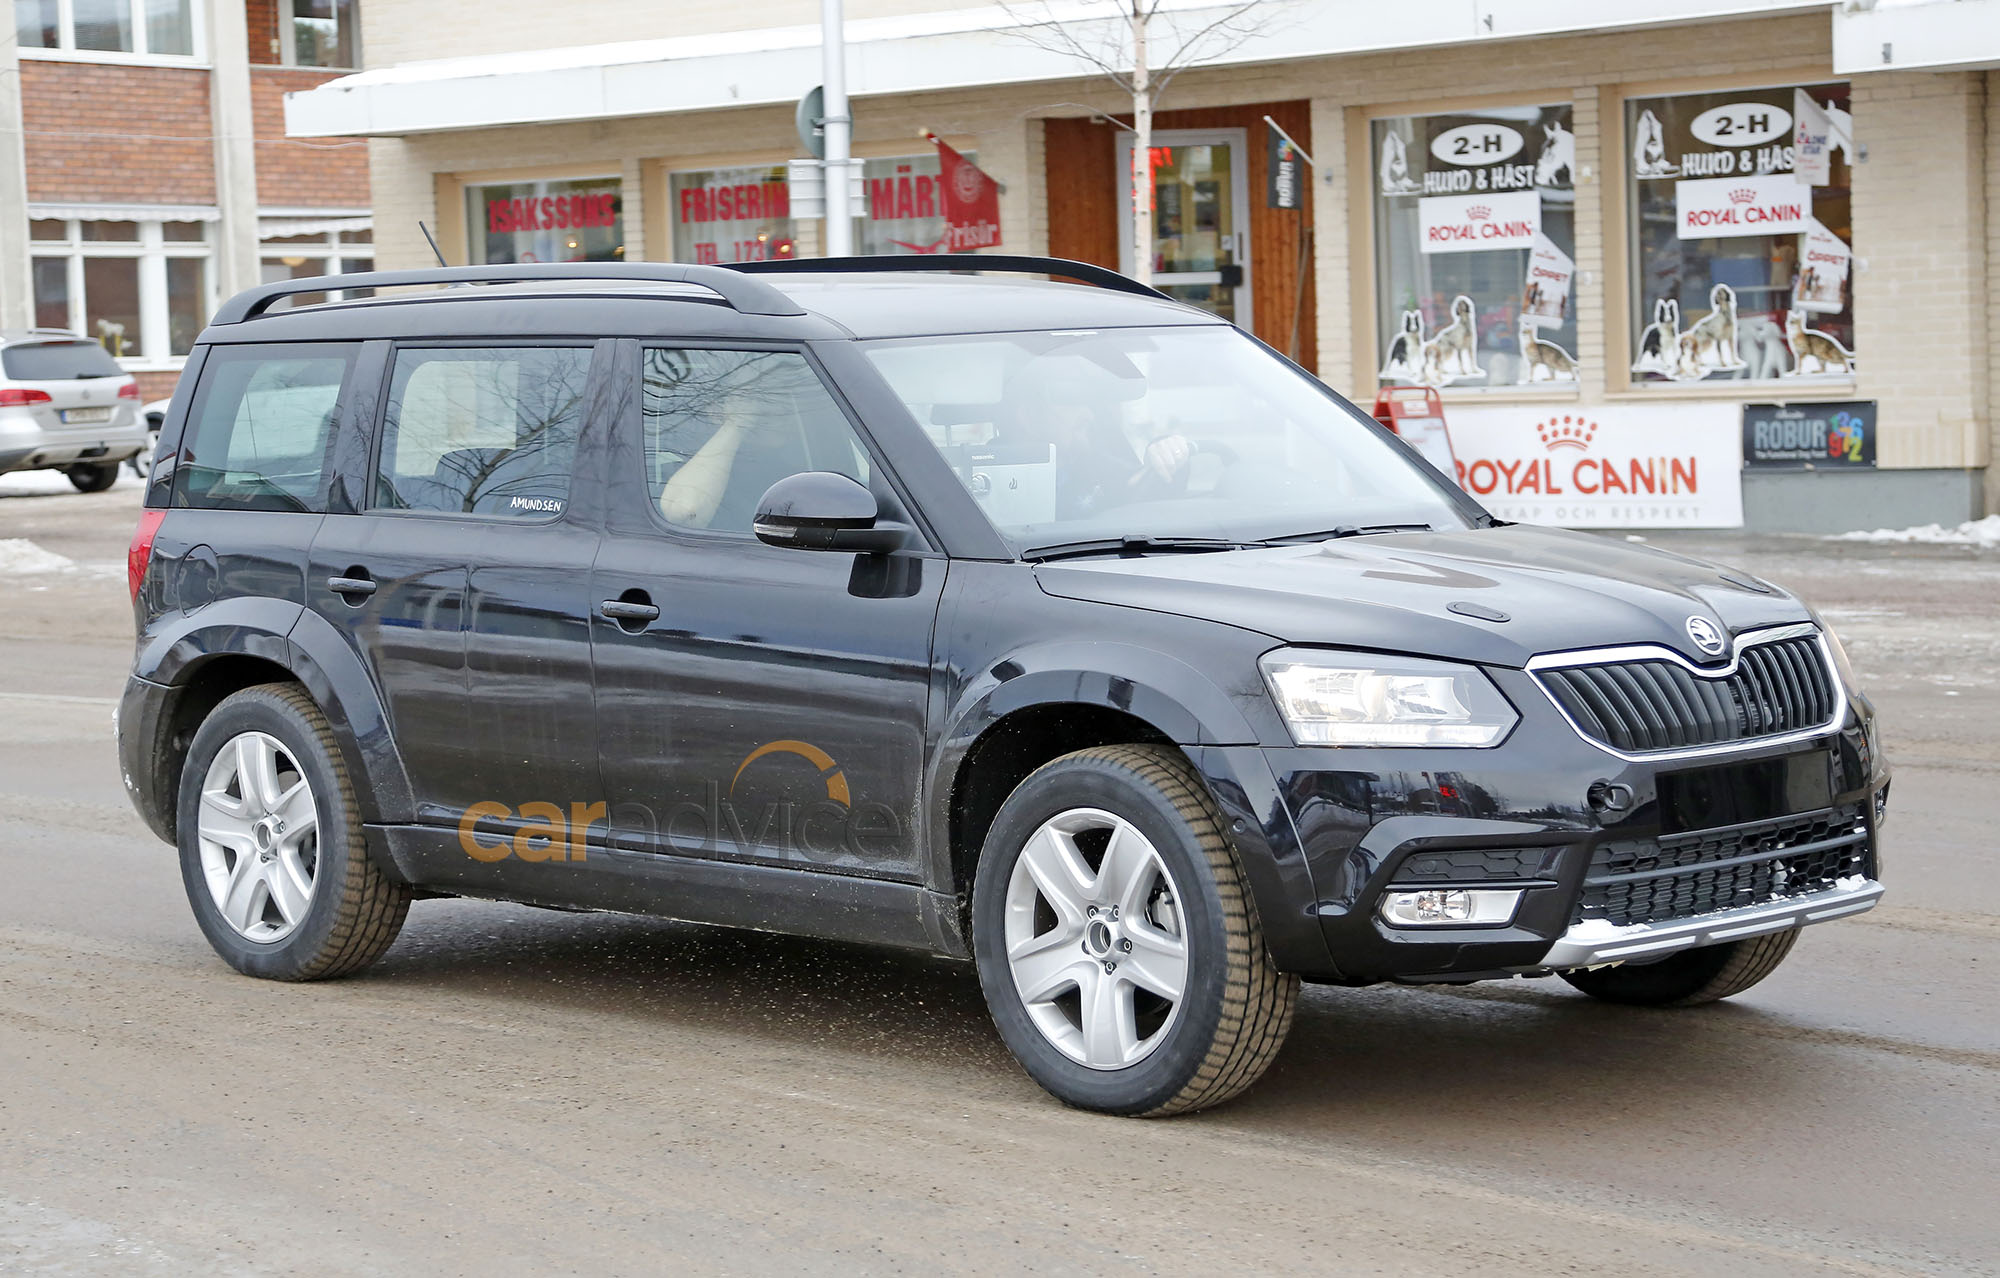 7 Seater Suv 2017 >> Skoda seven-seat SUV spied during testing - Photos (1 of 7)